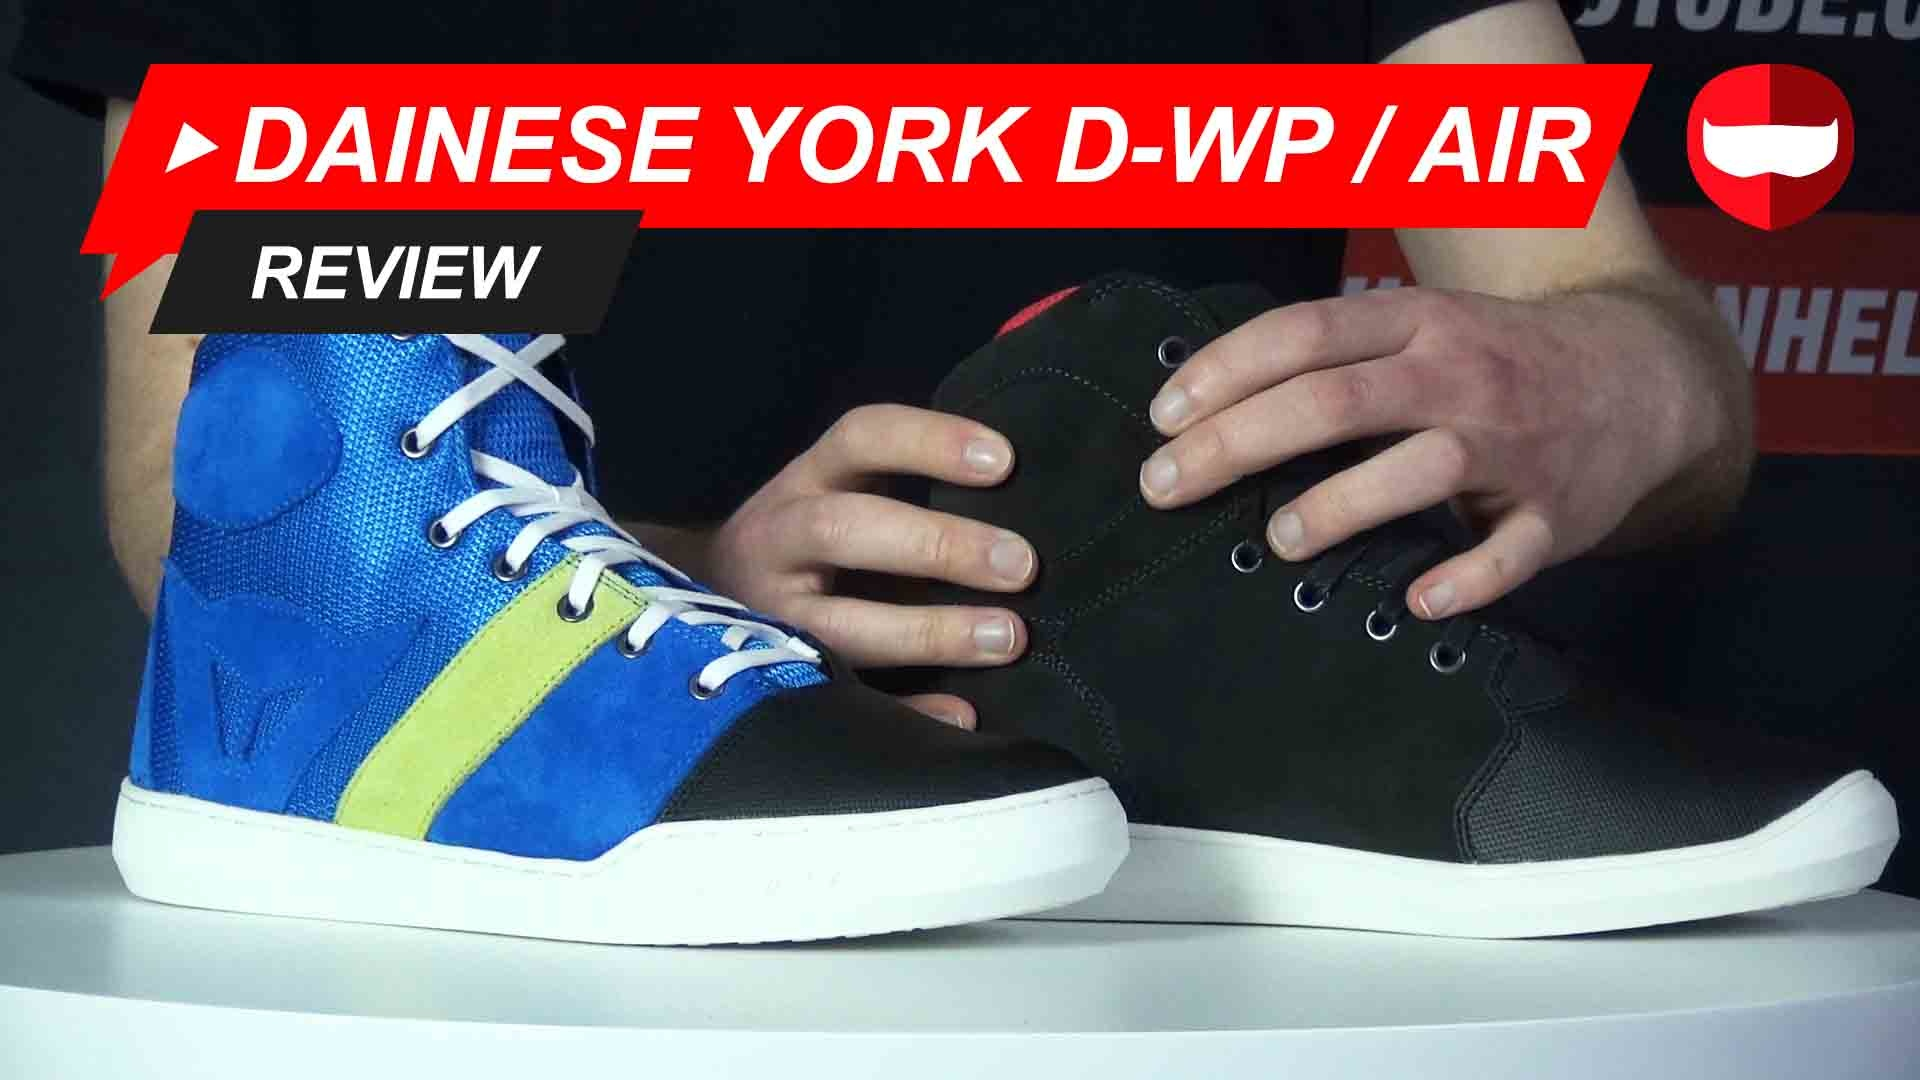 Dainese York D-WP and York Air Shoe Review and Video